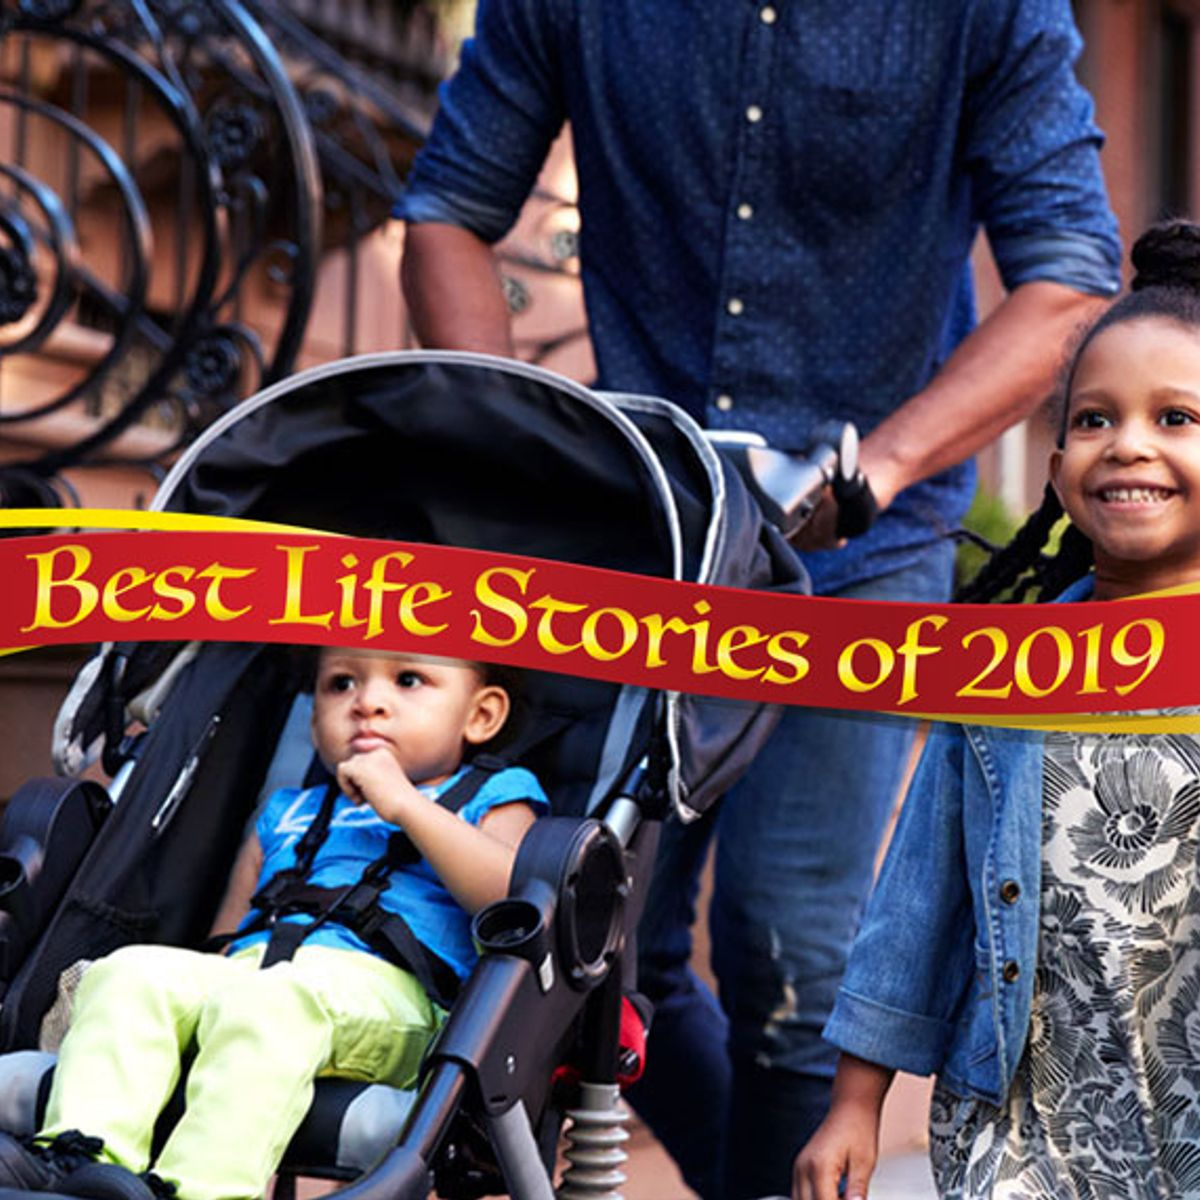 Best of 2019: Why I'm not raising my child in my old neighborhood